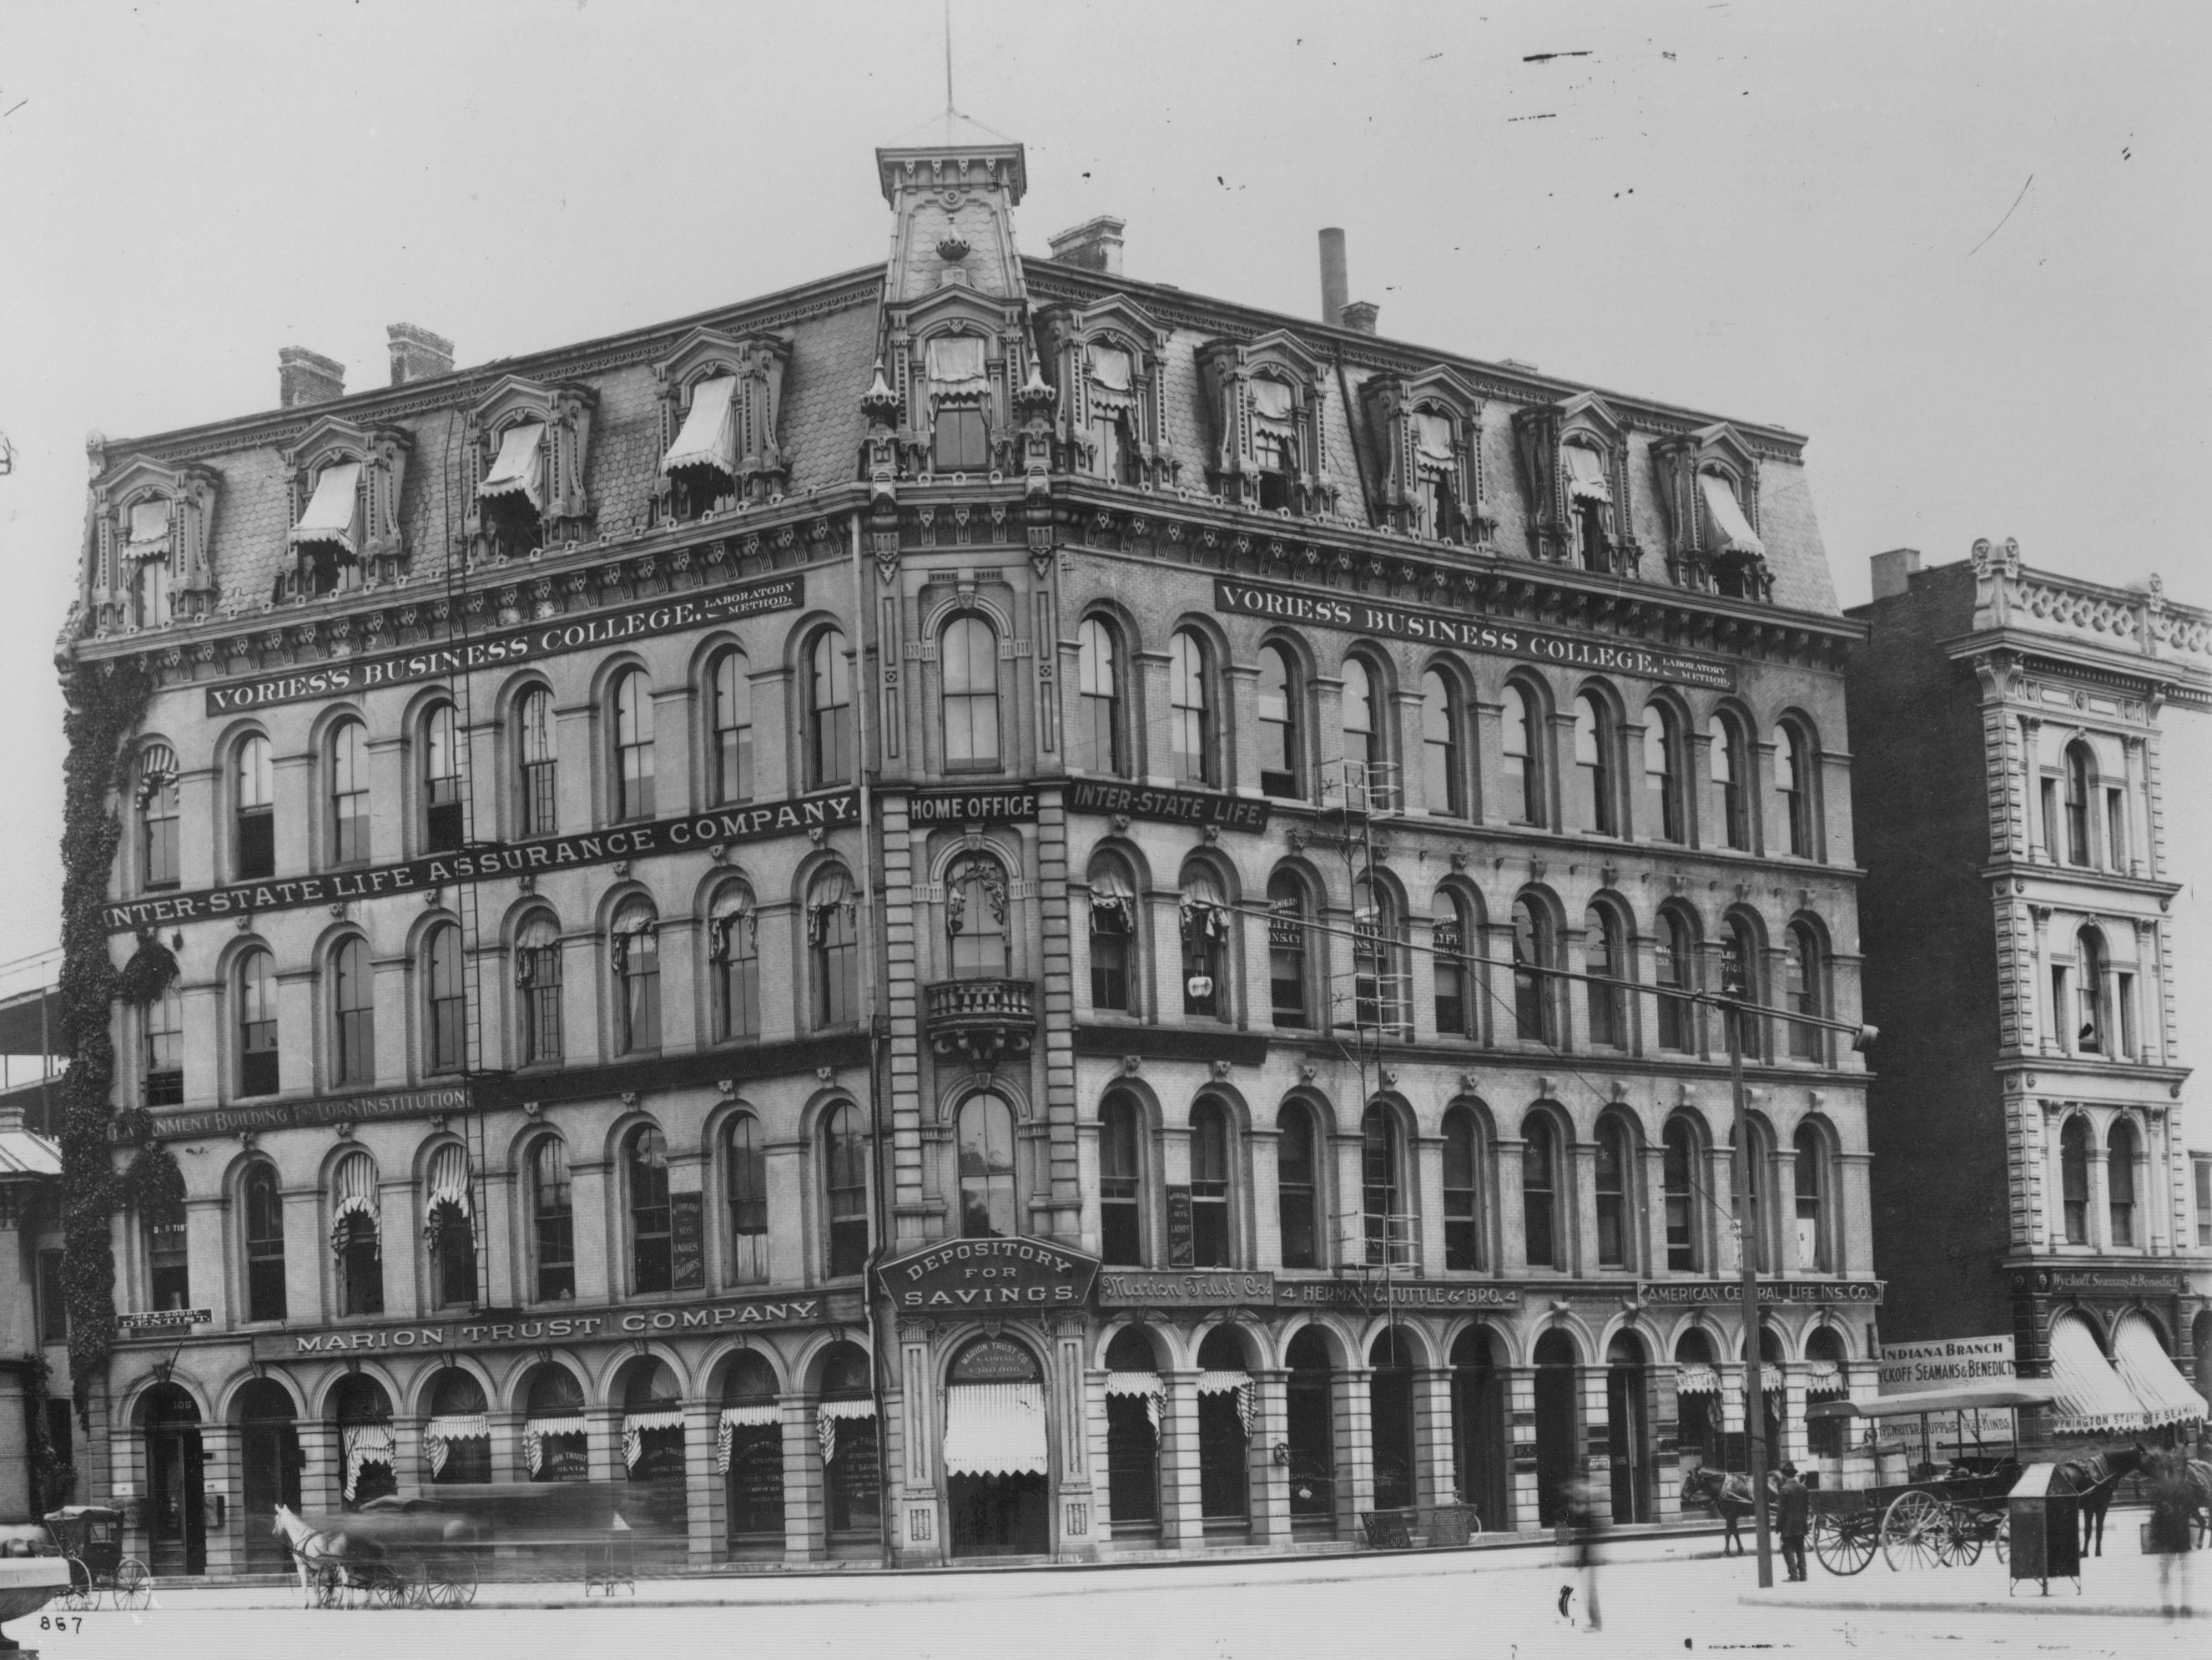 This 1903 photo shows the building at the corner of Market on the northeast quadrant of Monument Circle housed Vories's Business College, Inter State Life Assurance Company and Marion Trust Company.